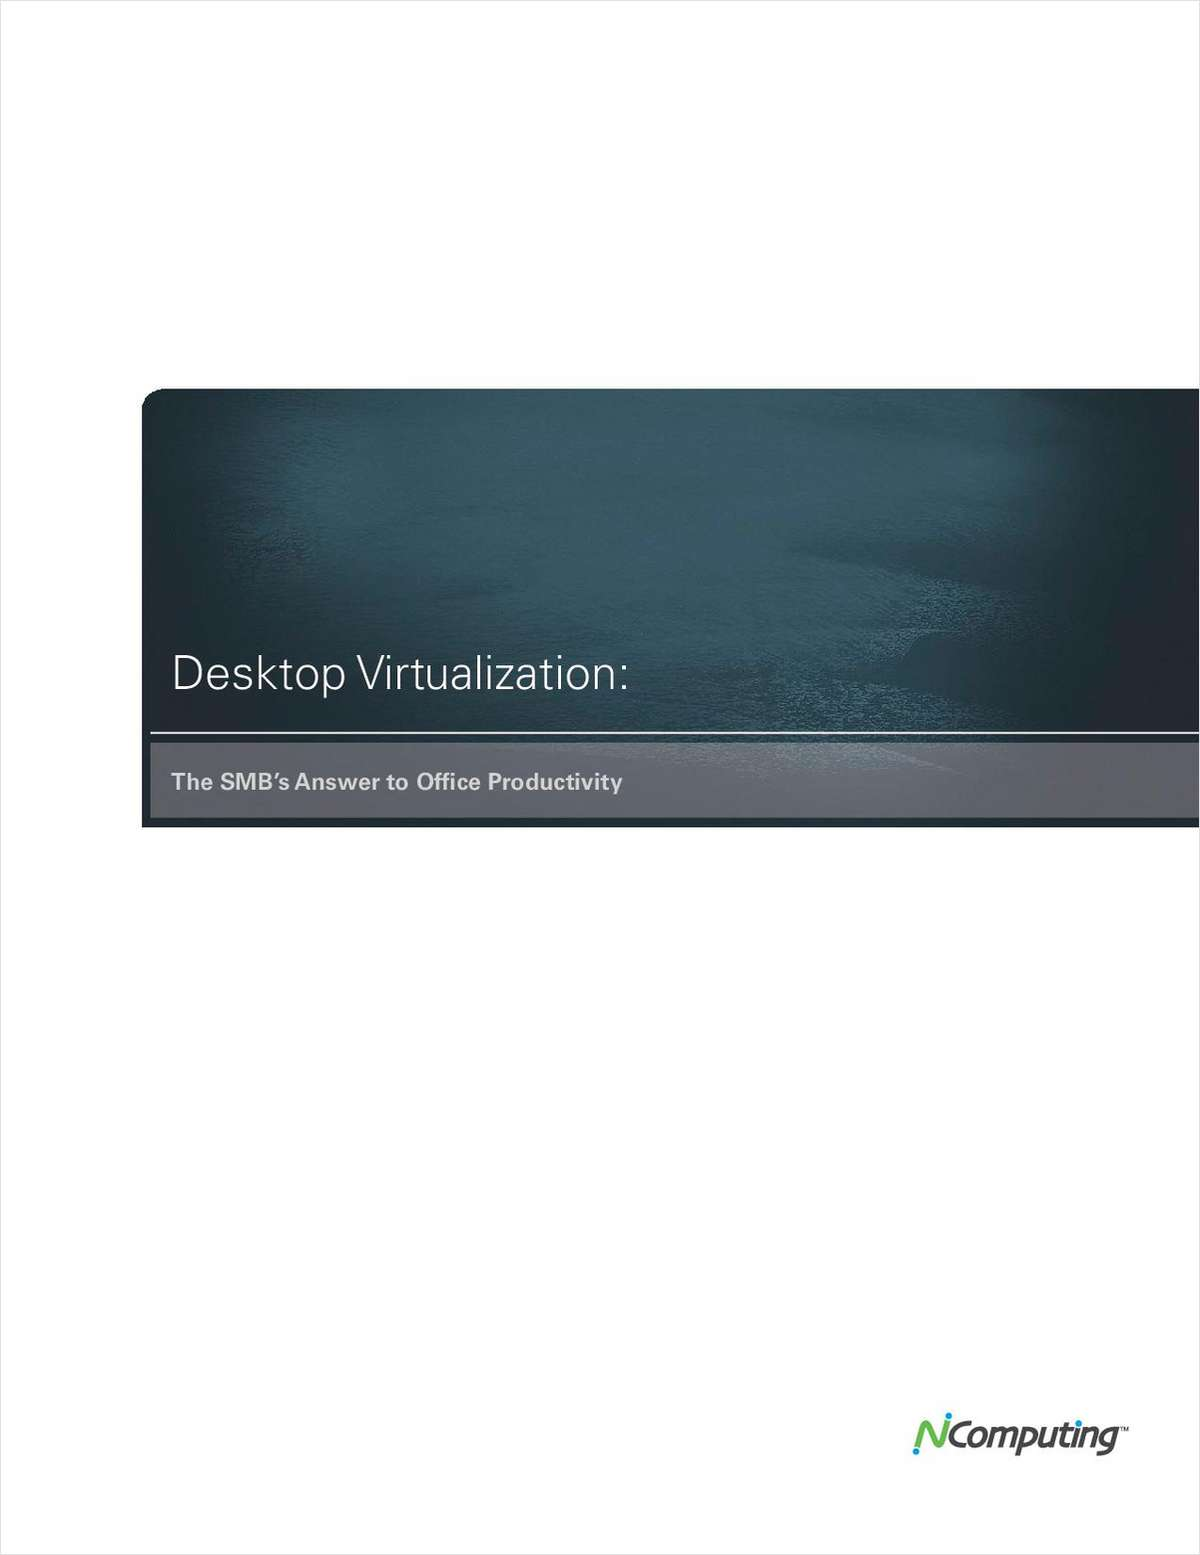 Desktop Virtualization: The SMB's Answer to Office Productivity